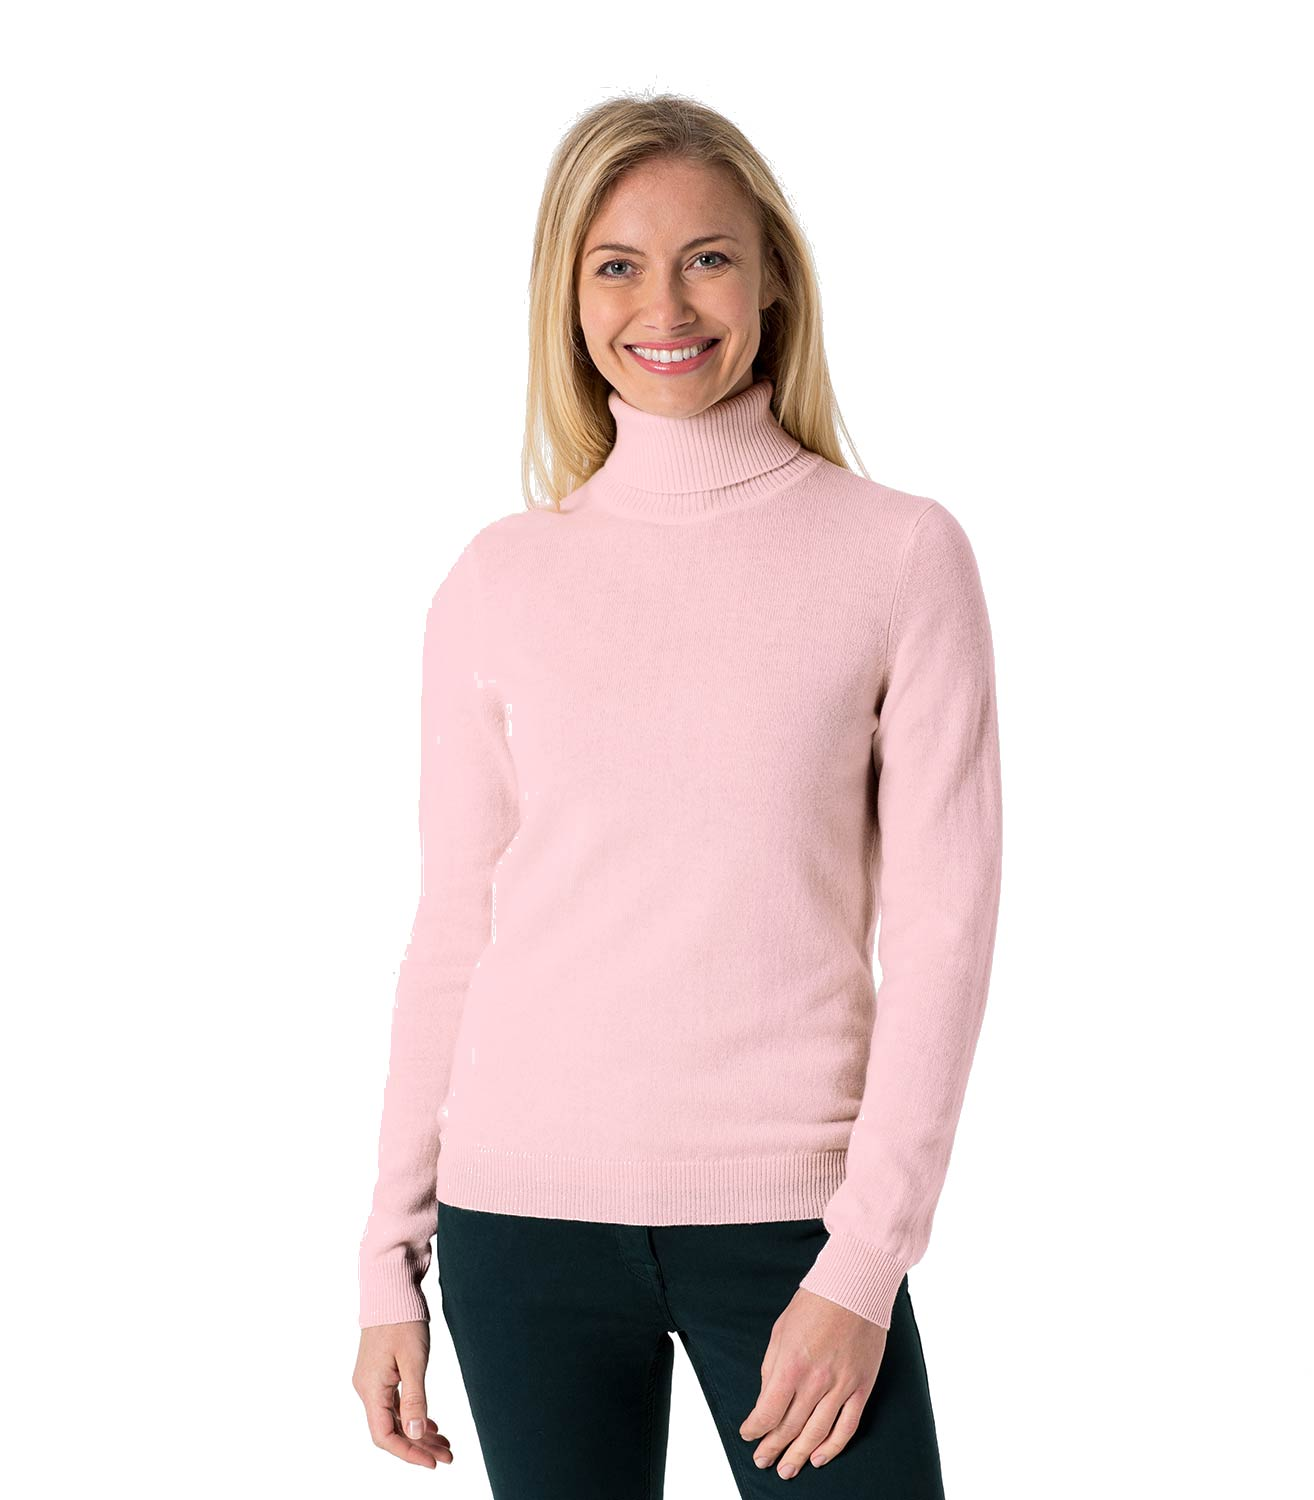 For ladies who like to bring an air of sophistication to a room, our women's roll neck tops are ideal. Perfect for the office or a night on the town, our women's roll neck tops collection ranges from classic black high neck tops to smart turtleneck tops and funnel neck styles.